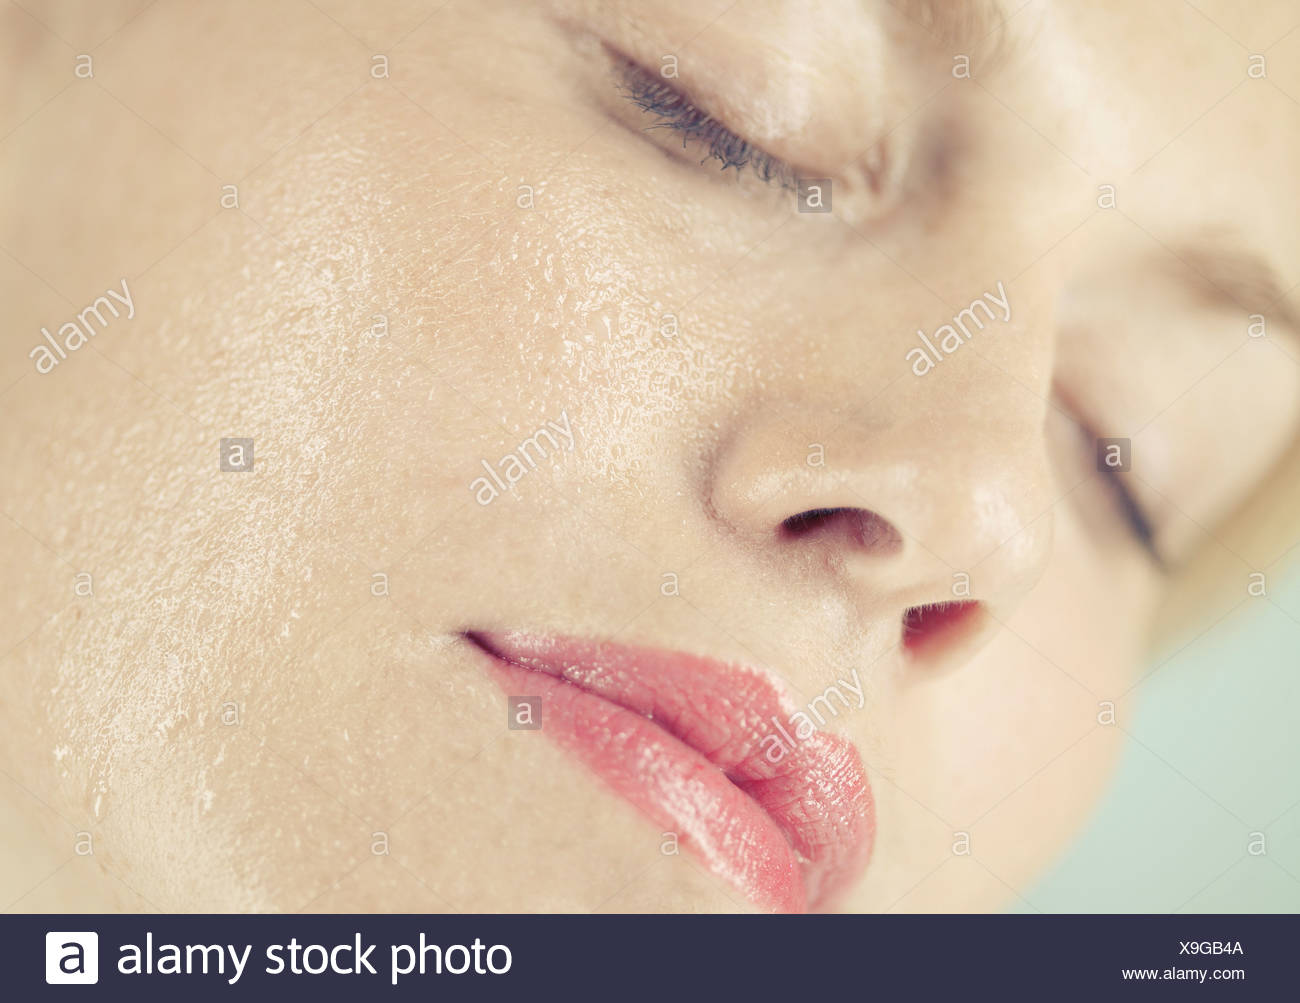 Teen pheochromocytoma sweat and have facial pallor indian bollywood